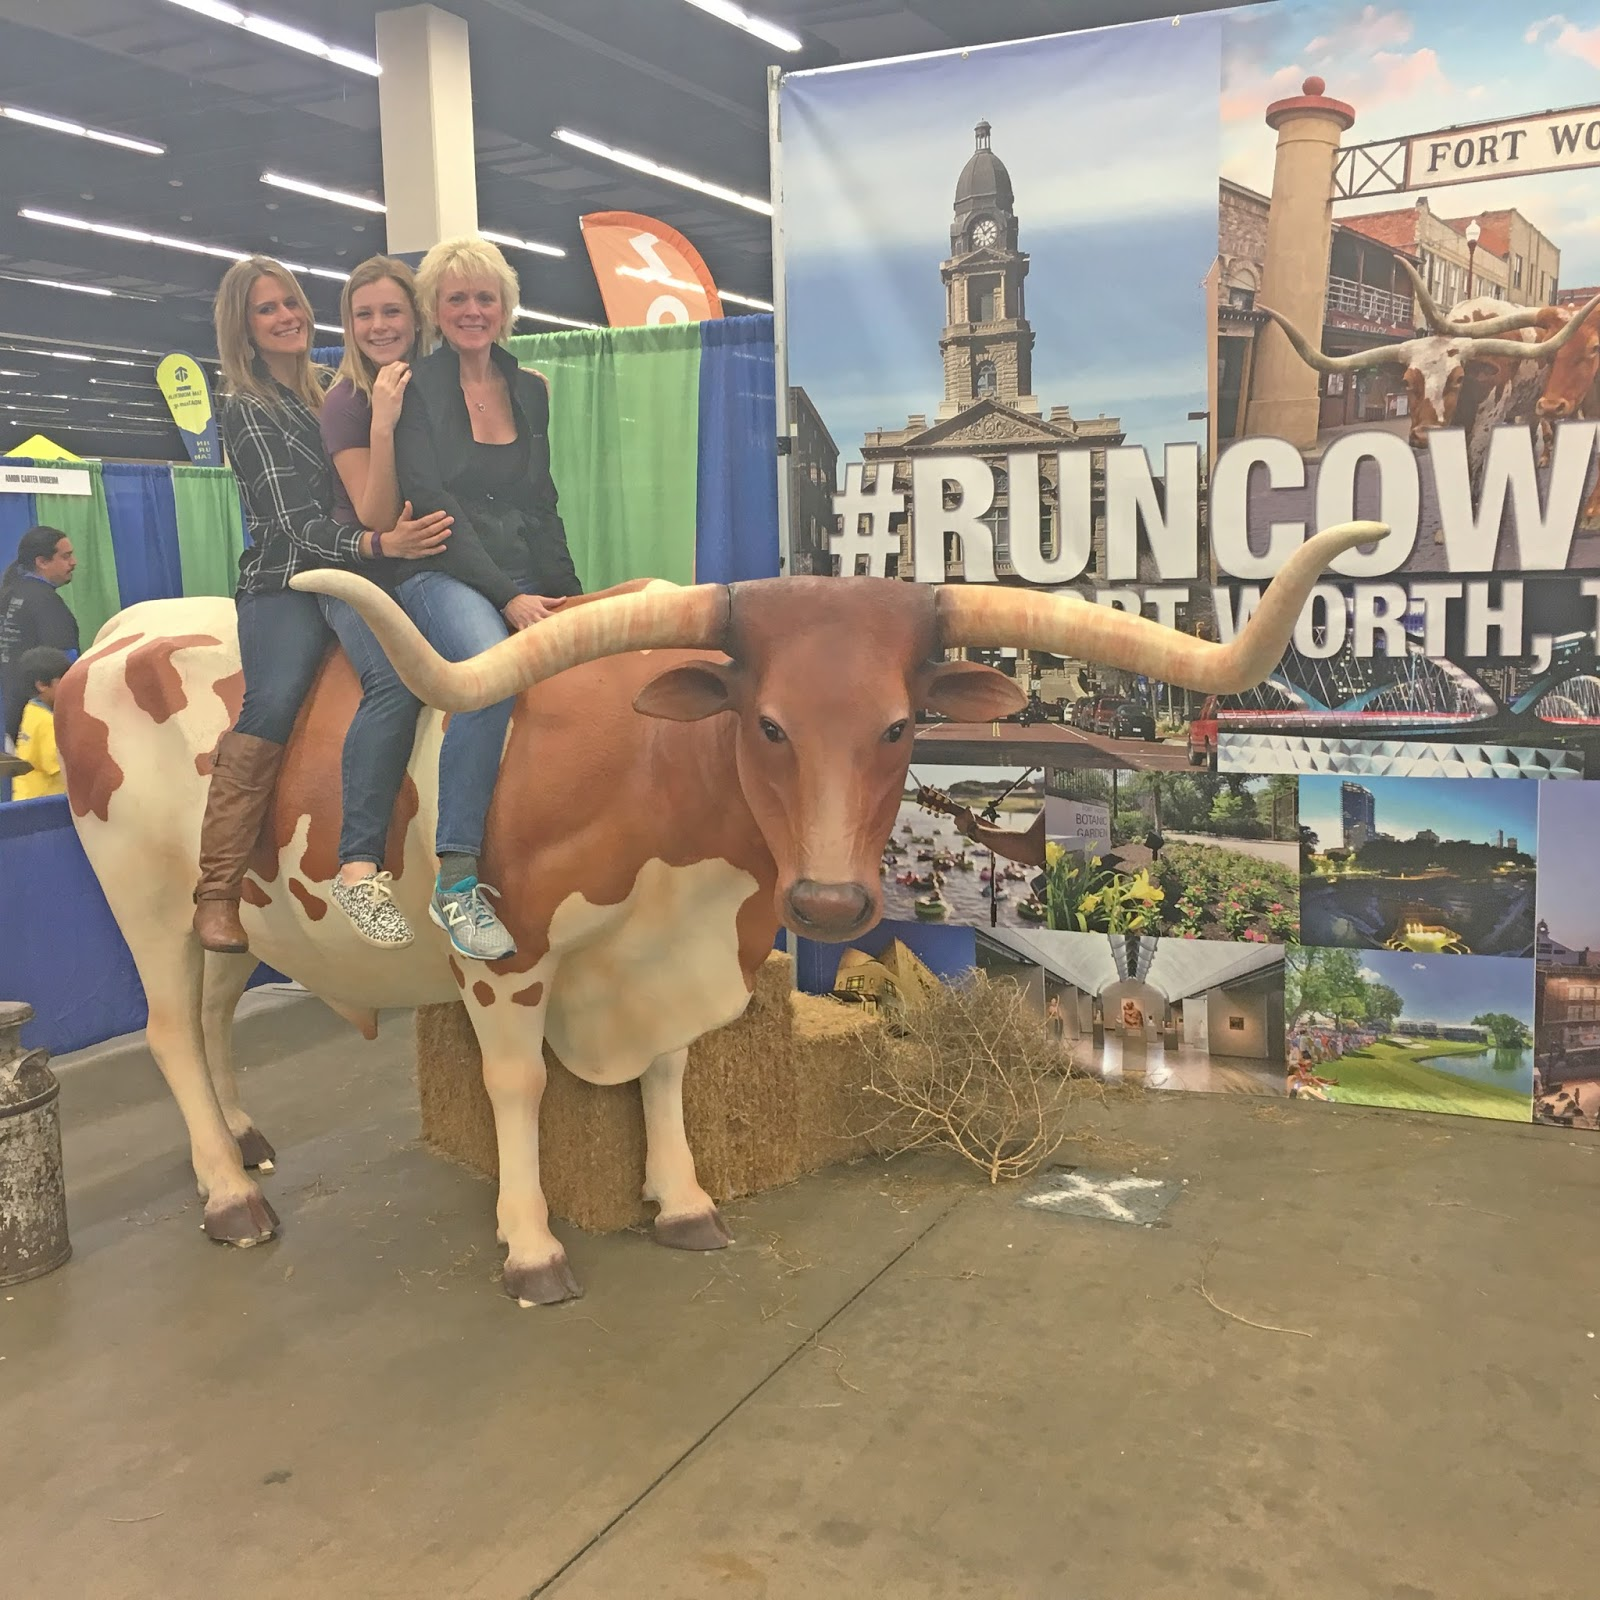 Cowtown marathon packet pickup in Fort Worth, Texas